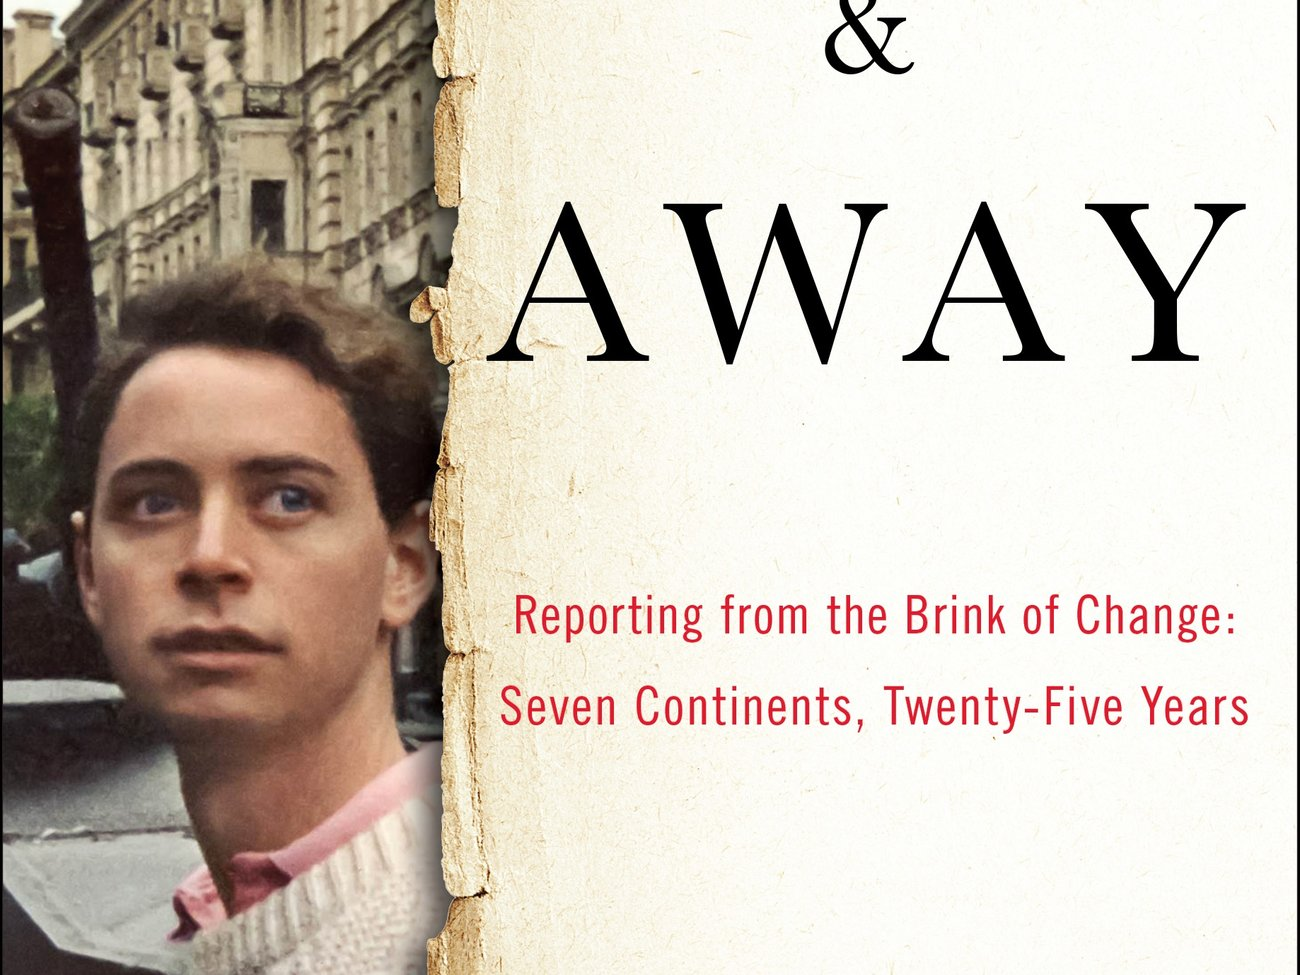 far-and-away-by-andrew-solomon-BOOKS0116.jpg